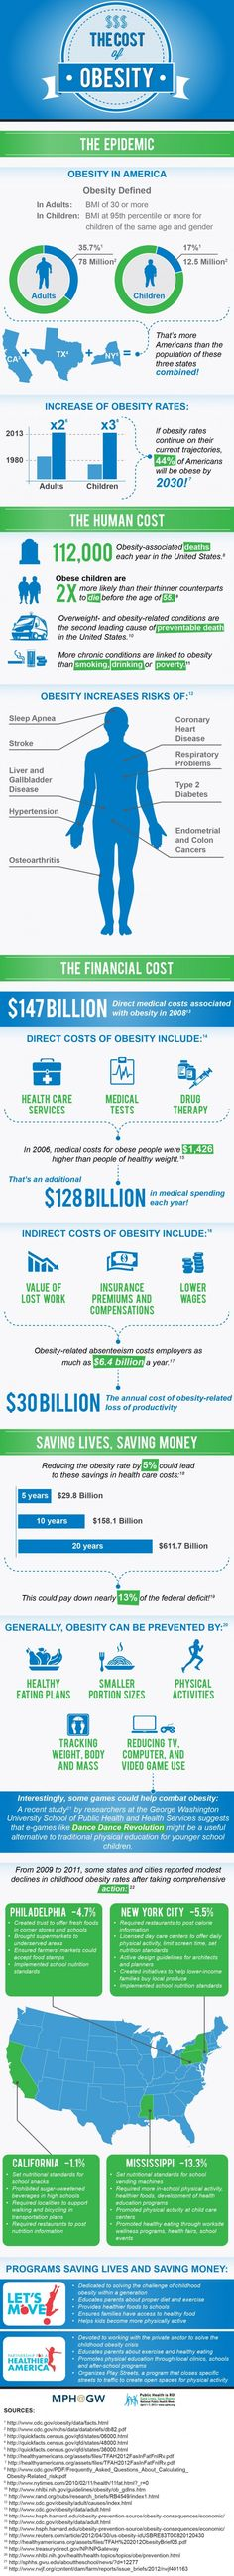 Infographic on the cost of obesity in the US